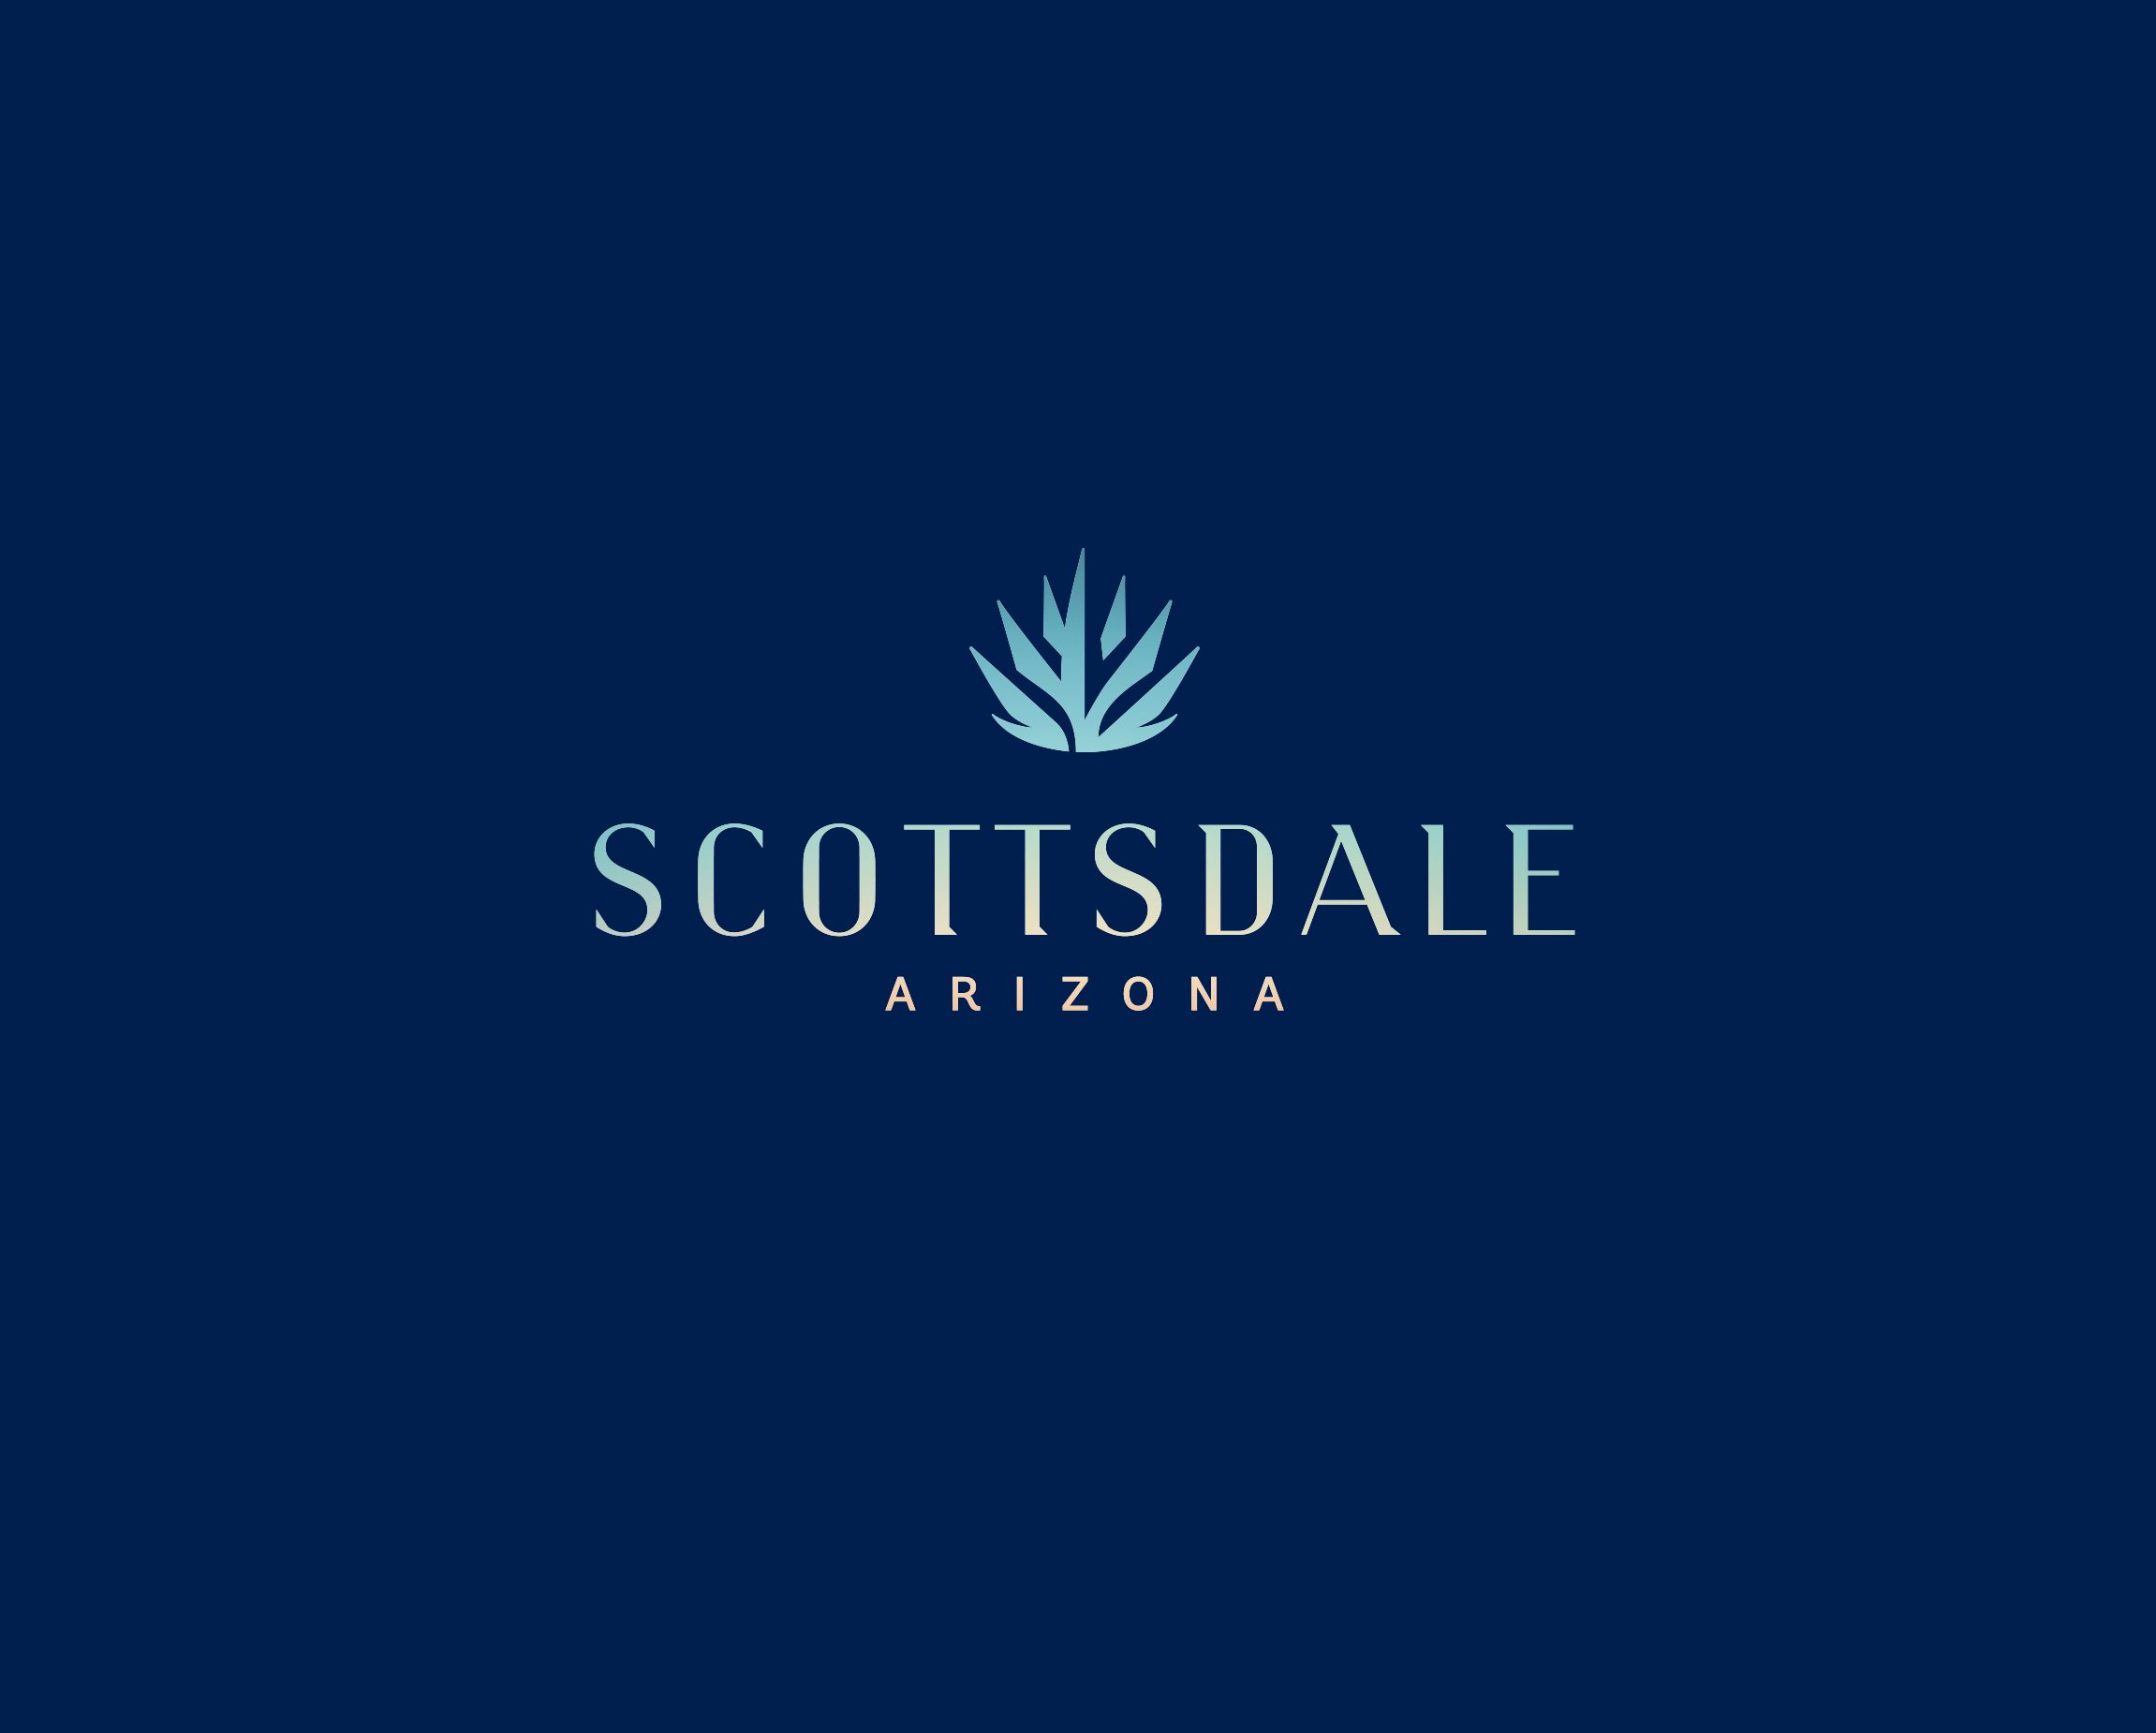 Scottsdale Logo - blue background